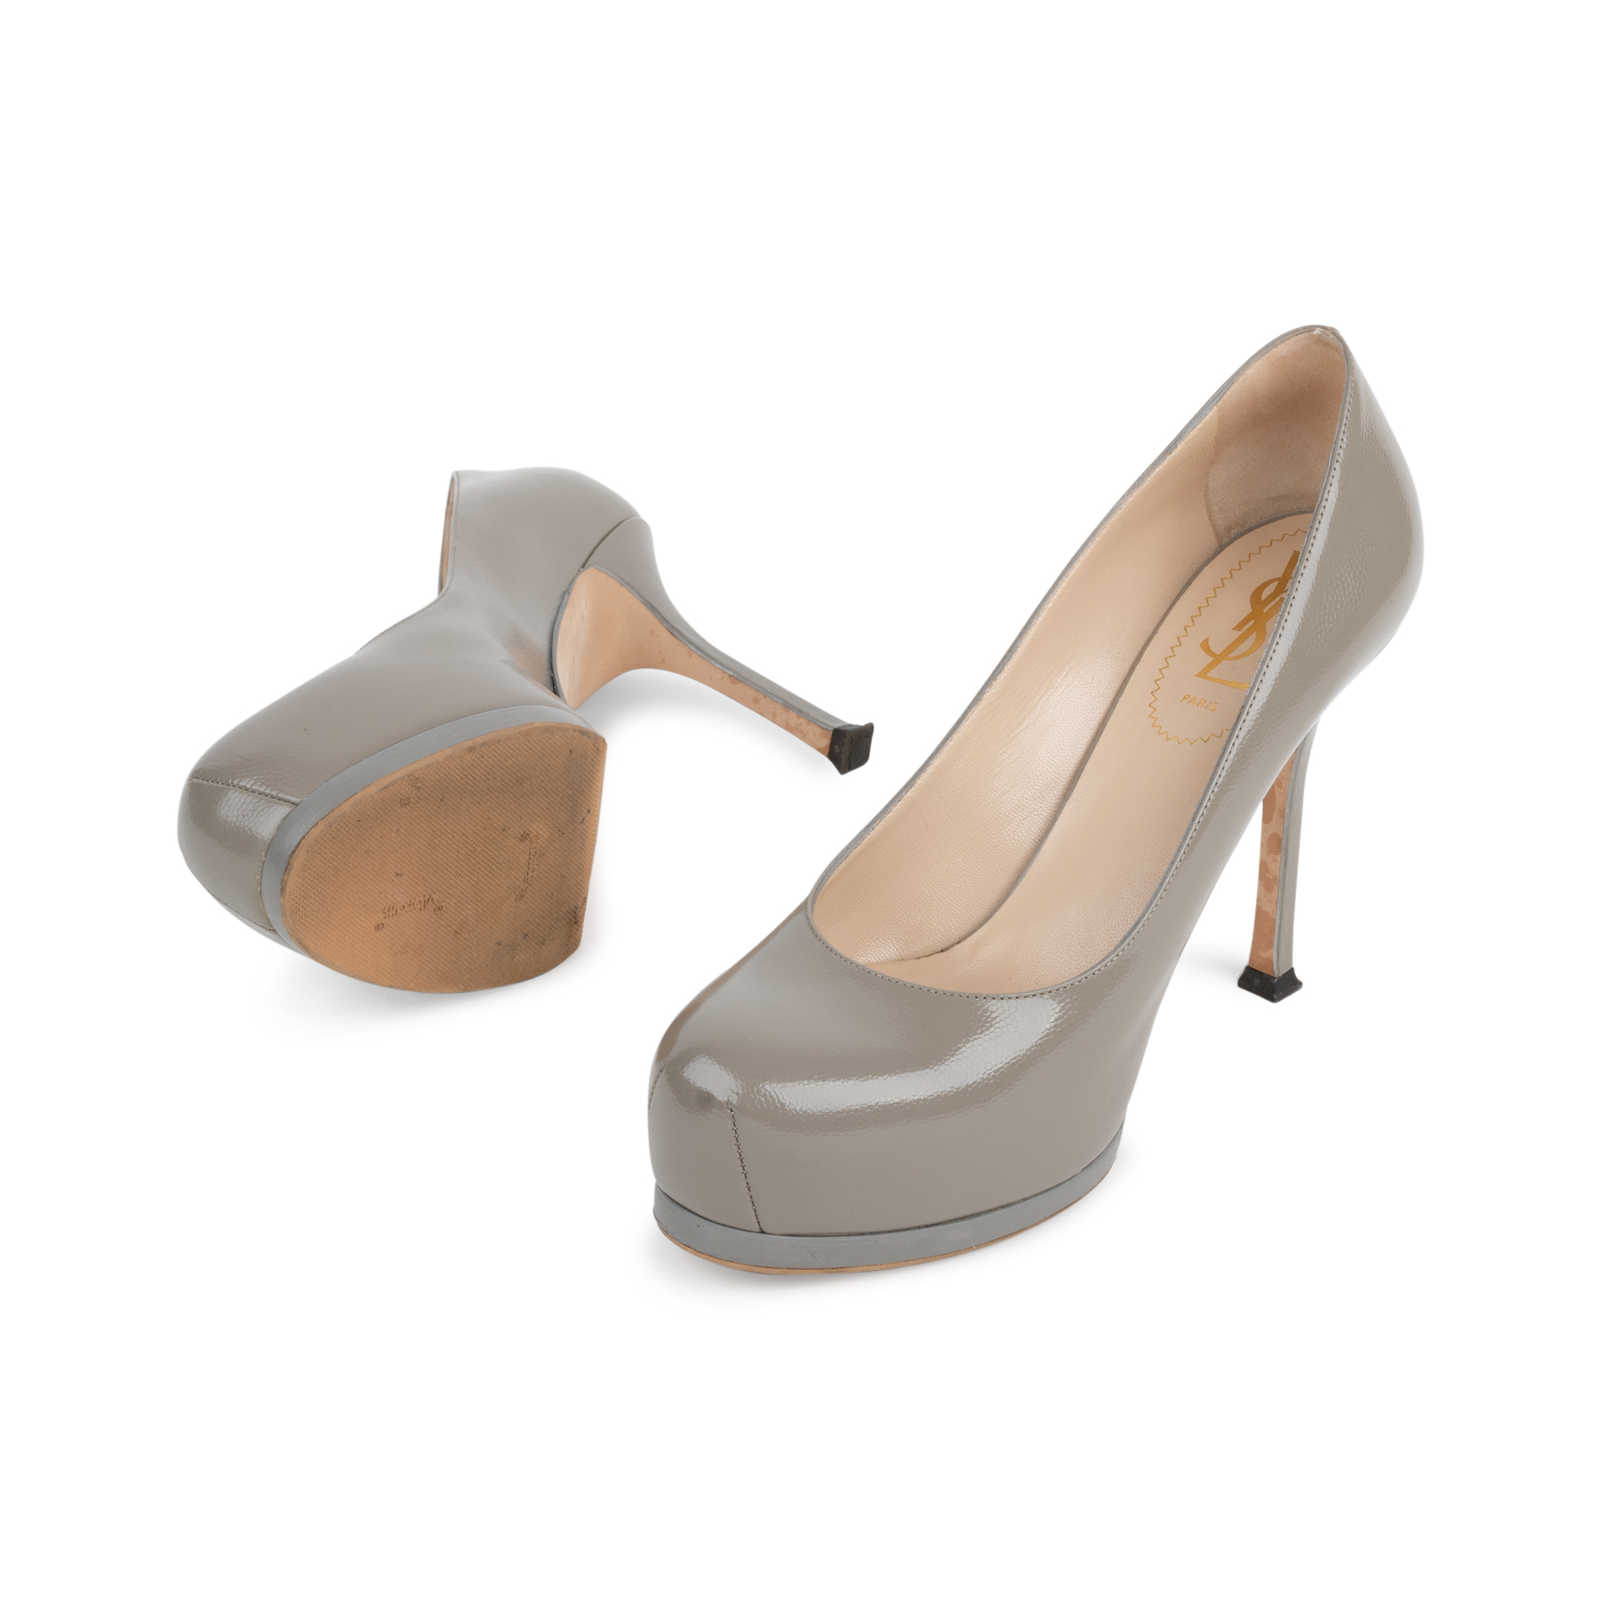 f9967beddd9 ... Authentic Second Hand Yves Saint Laurent Tribtoo Pumps (PSS-566-00076)  ...